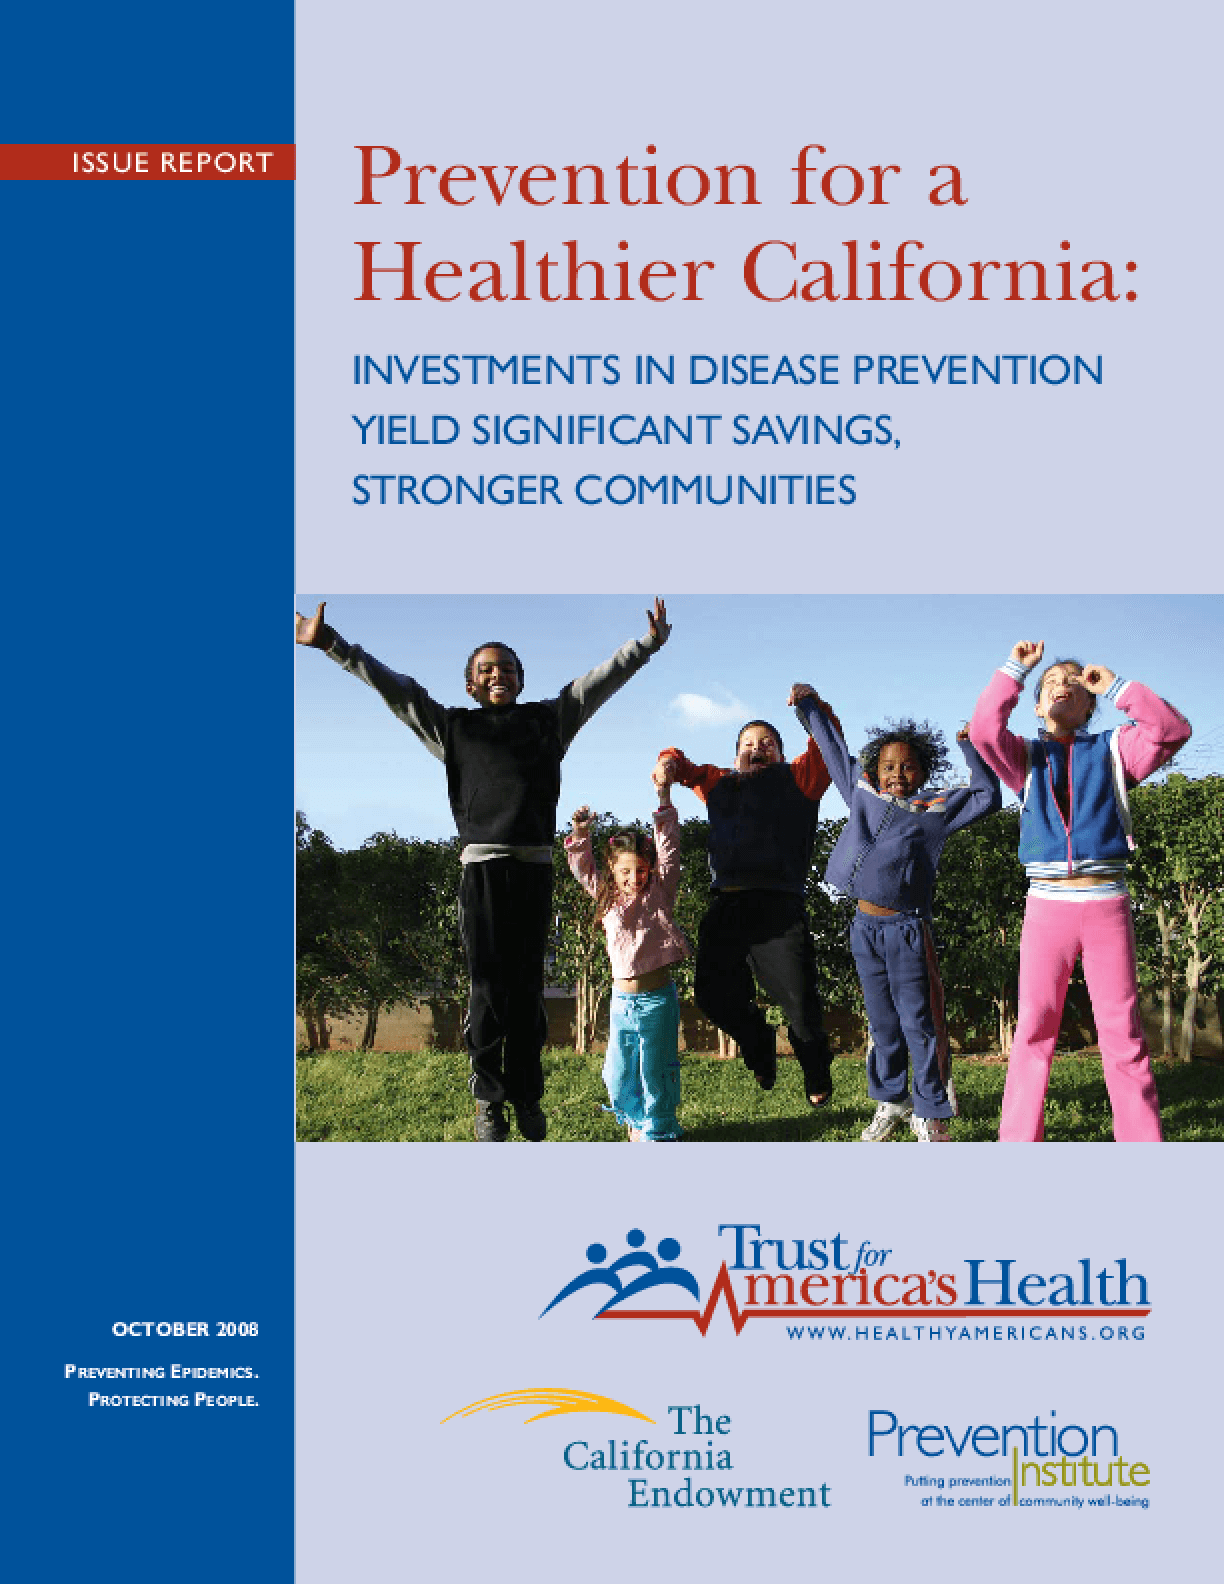 Prevention for a Healthier California: Investments in Disease Prevention Yield Significant Savings, Stronger Communities